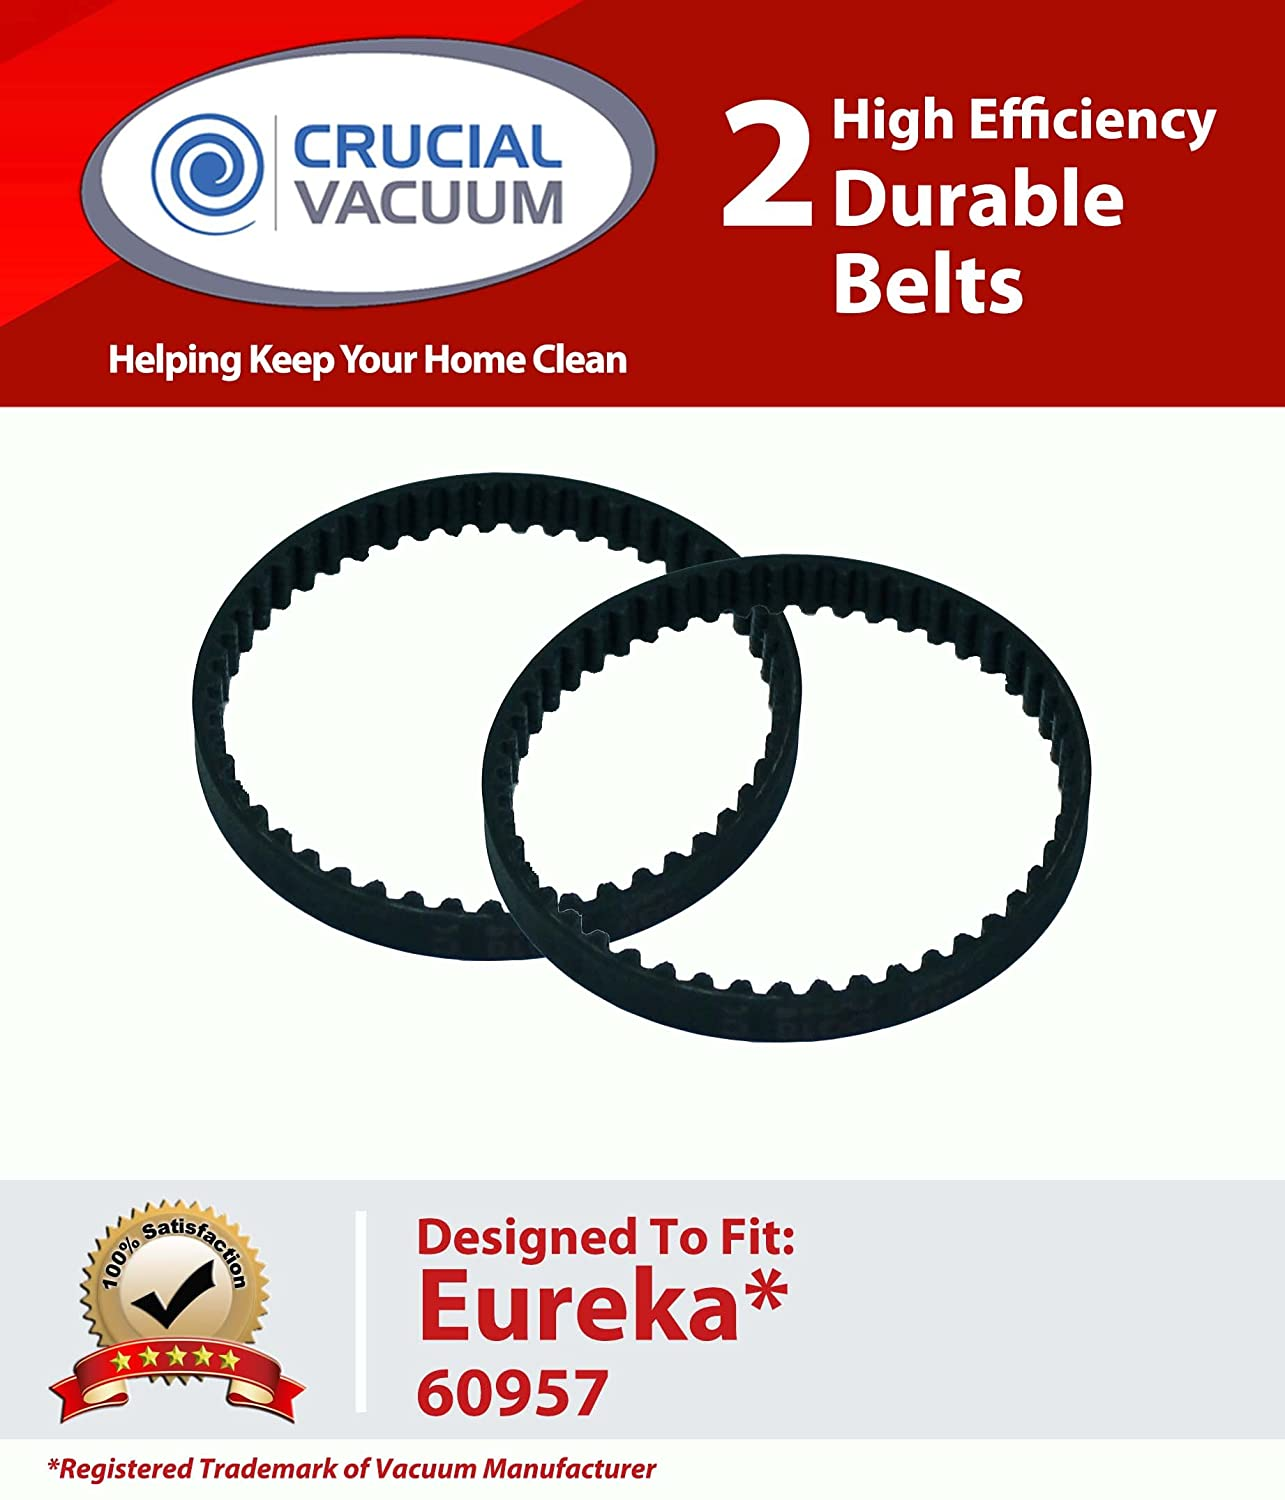 Crucial Vacuum 2 Eureka 60957 Belts; Fits Eureka Hand-Held Vacuum; Part # 60957; Designed & Engineered by Crucial Vacuum at Sears.com